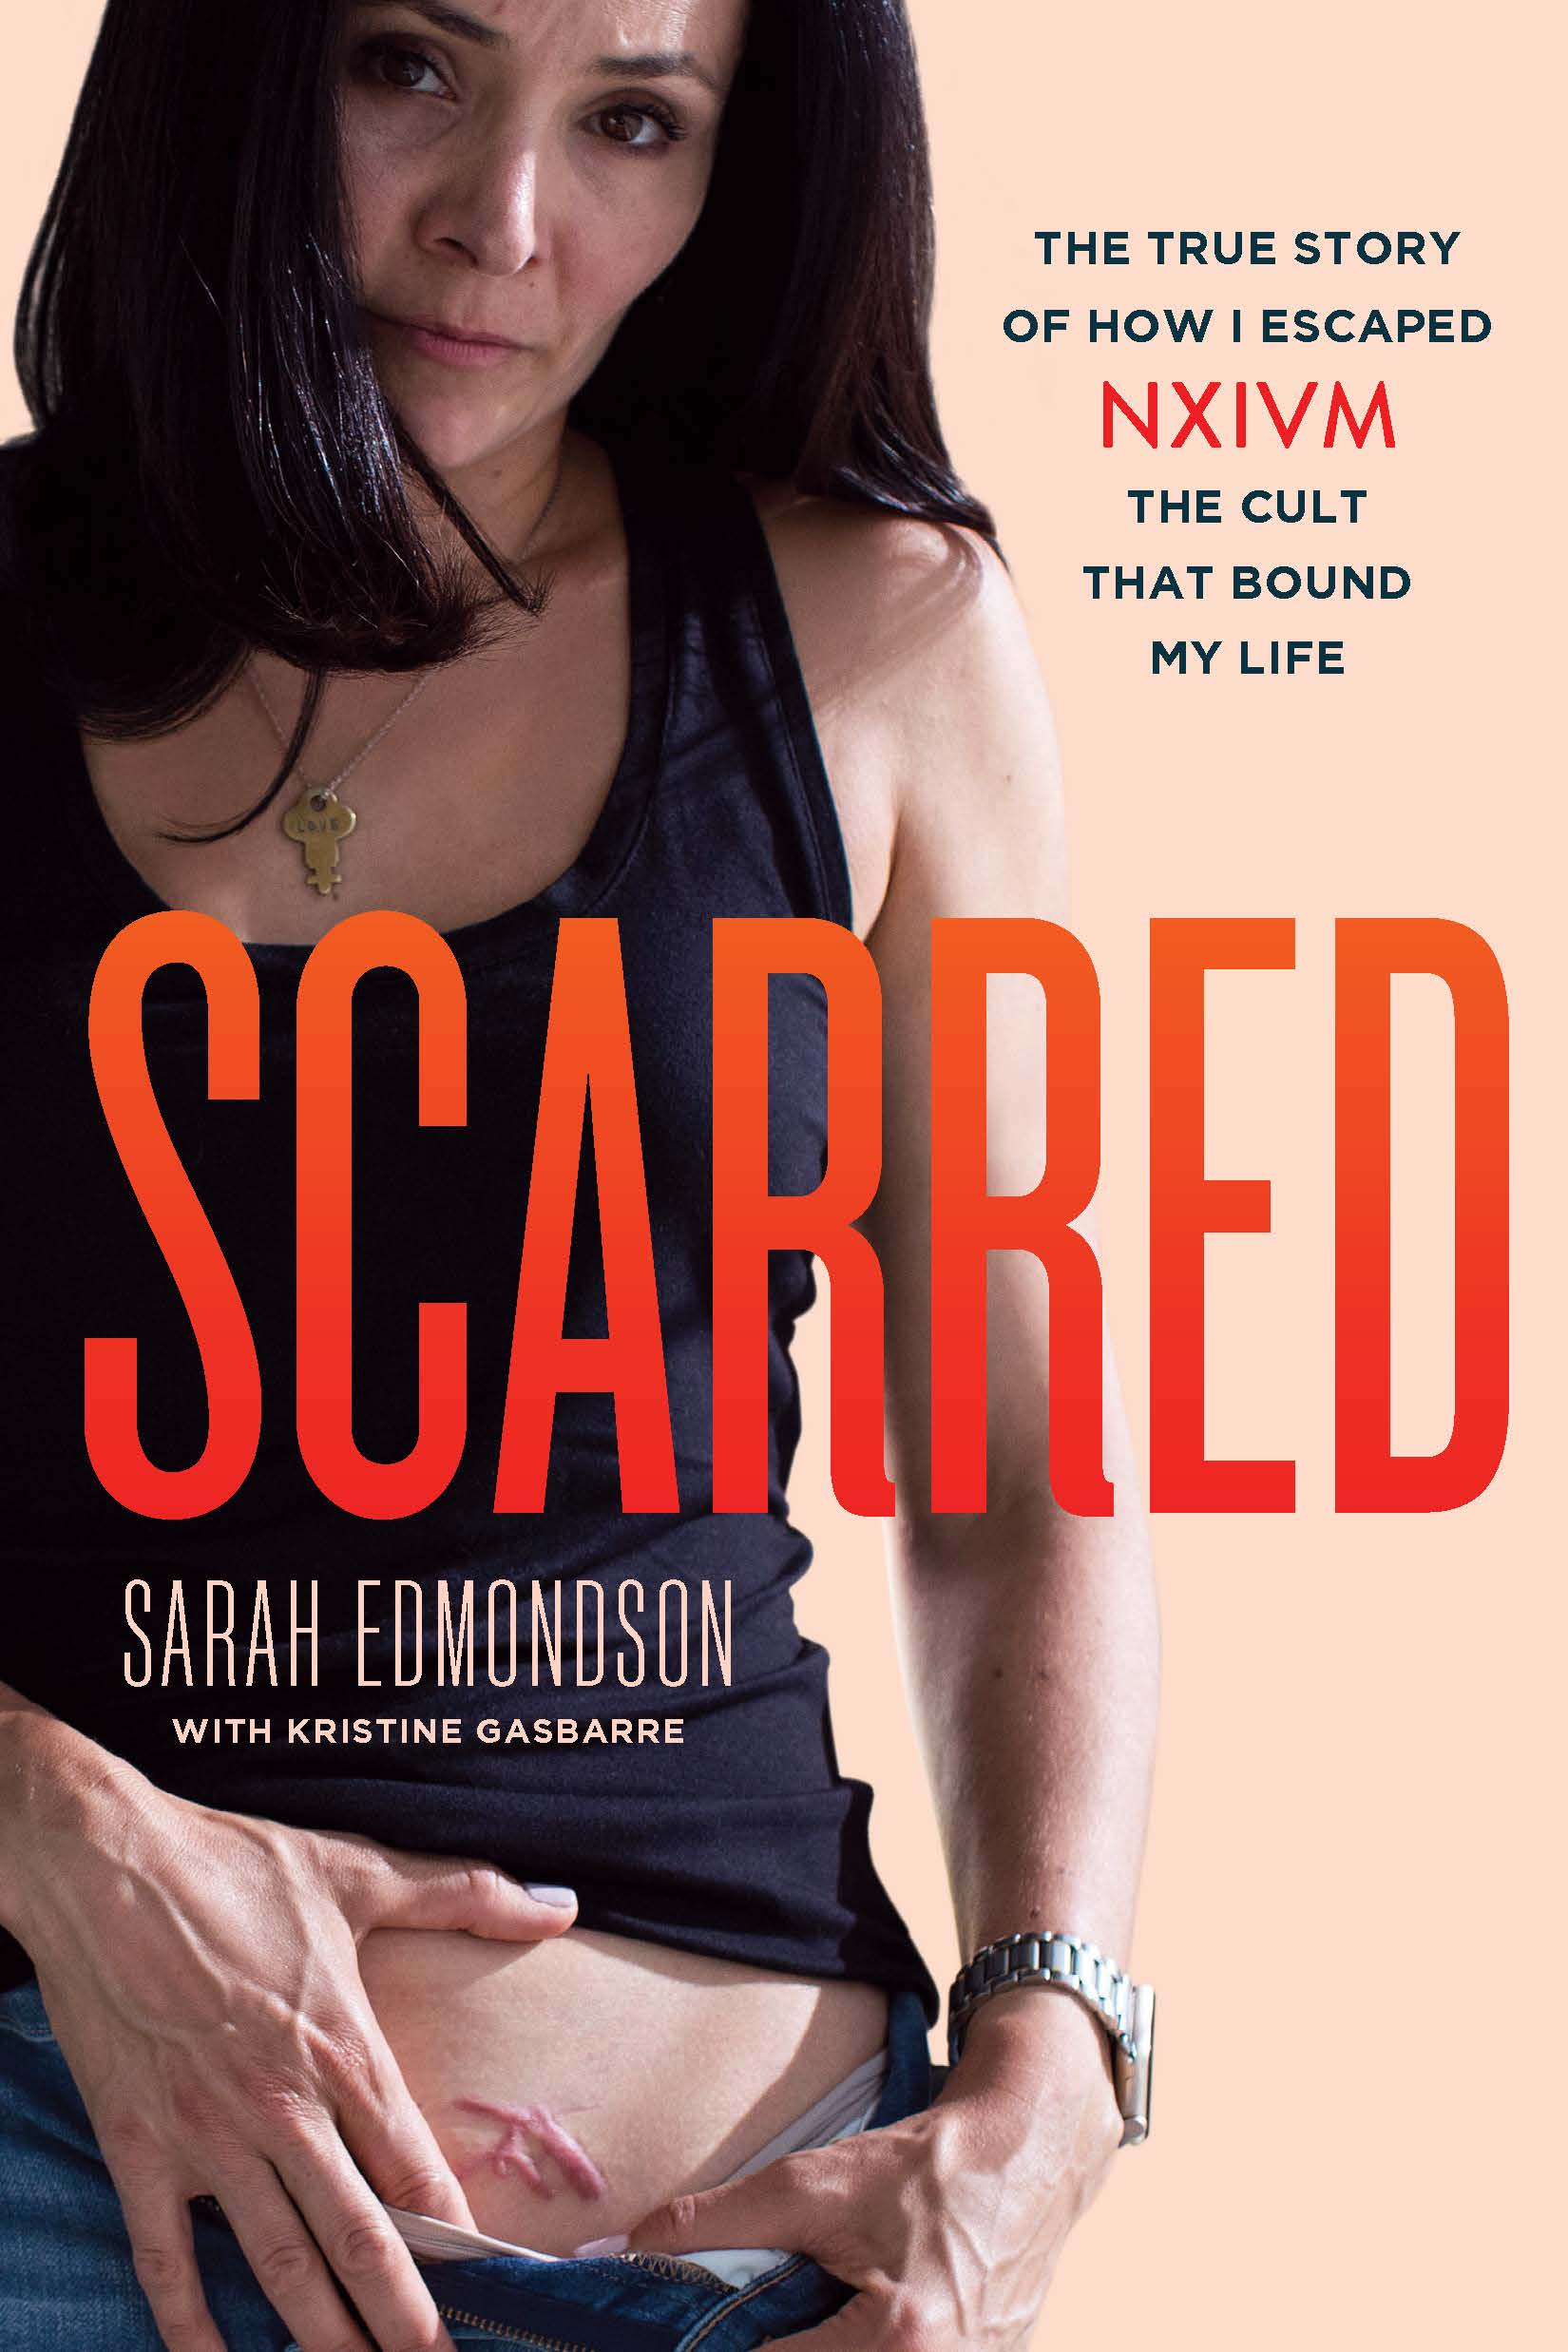 """""""Master, would you brand me? It would be an honor."""" - Read the shocking and subversive memoir of a 12-year-NXIVM-member-turned-whistleblower, and her inspiring true story of abuse, escape, and redemption. A portion of the profits will be devoted to starting a foundation for victims of NXIVM—to support their healing and recovery.AMAZON (All Countries)BARNES & NOBLEINDIEBOUNDAPPLE BOOKSINDIGO (Canada)WATERSTONES (UK)BOOKTOPIA (Australia)MIGHTY APE (New Zealand)In 2005, Sarah Edmondson was a young actress getting her start in Vancouver and hungry for purpose. When NXIVM, a personal and professional development company, promised to provide the tools and insight to reach her potential and make an impact, Sarah was intrigued. She would go on to become one of the cult's most faithful (and effective) devotees. Over her twelve-year tenure, Sarah enrolled over 2,000 people and operated her own NXIVM center in Vancouver.Of course, things were not what they seemed. As Sarah progressed up NXIVM's """"Stripe Path,"""" questions kept coming up about the organization's rules and practices. Why did the organization prevent members from asking questions? Why did those who did ask questions promptly leave or disappear? These questions came to a head in 2017 when Sarah accepted an invitation from her best friend, Lauren Salzman, to join DOS, a """"secret sisterhood"""" within NXIVM and headed to the headquarters in Albany for the initiation ceremony. Thanks to Sarah's fearlessness as she put her life on the line, that ceremony would mark the beginning of the end of NXIVM.In this tell-all memoir, complete with personal photographs, Sarah shares her true story from the moment she takes her first NXIVM seminar, revealing in-depth details of her time as a member, including what happened on that fateful night in Albany, and her harrowing fight to get out, help others, and heal. This is also a true story about abuses of power, the role female friendships play in cults, and how sometimes the search to be"""